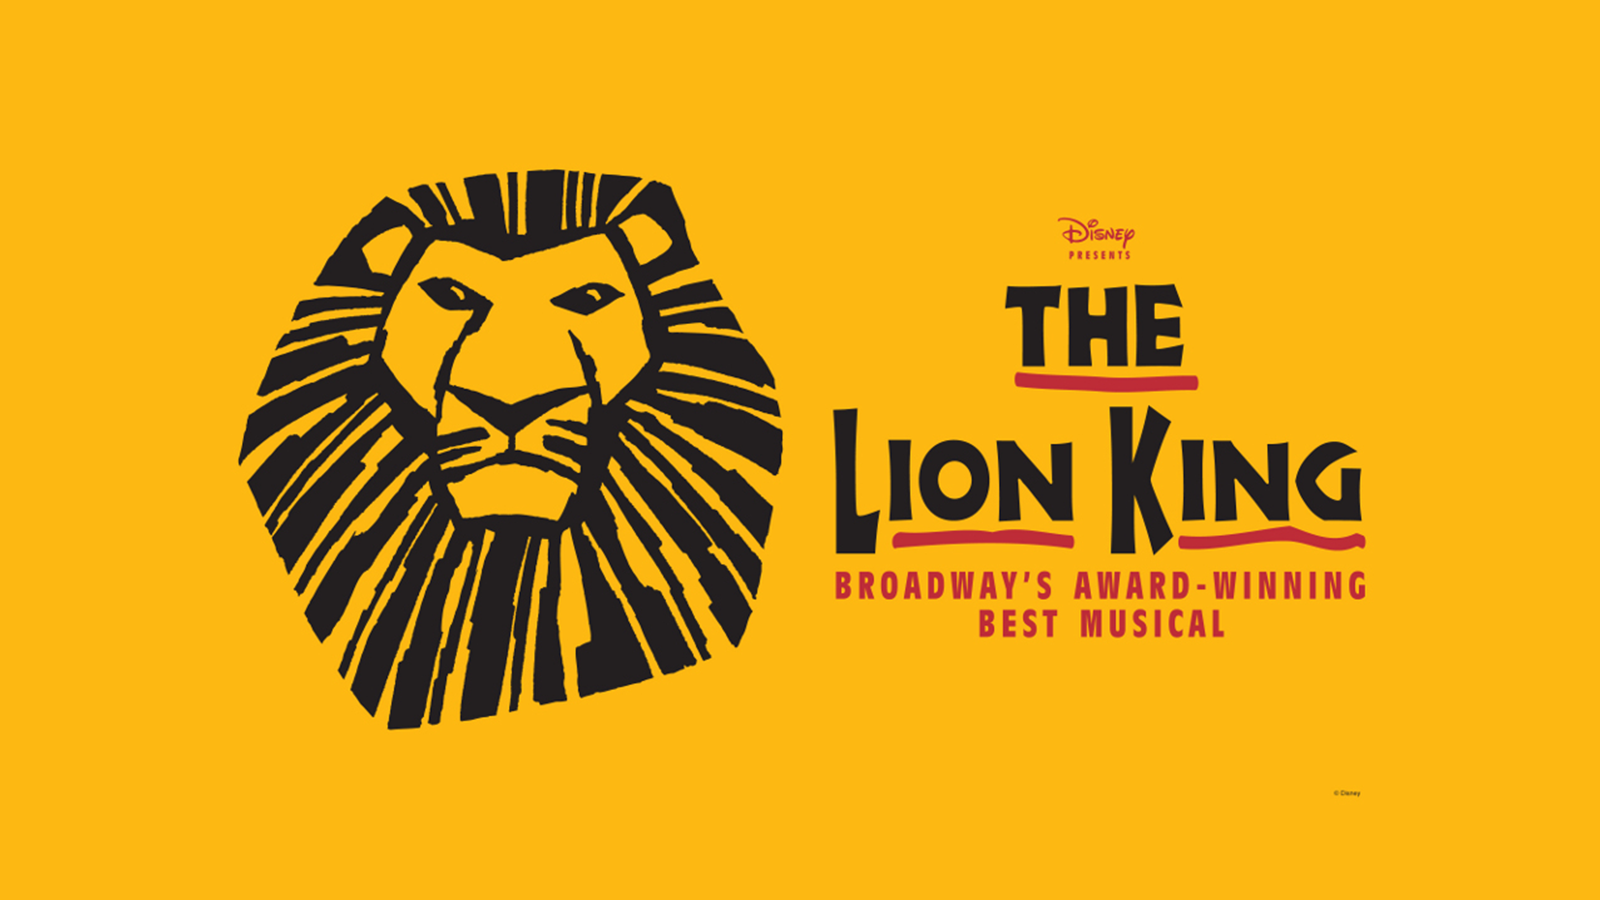 the lion king, lion king broadway, lion king discount